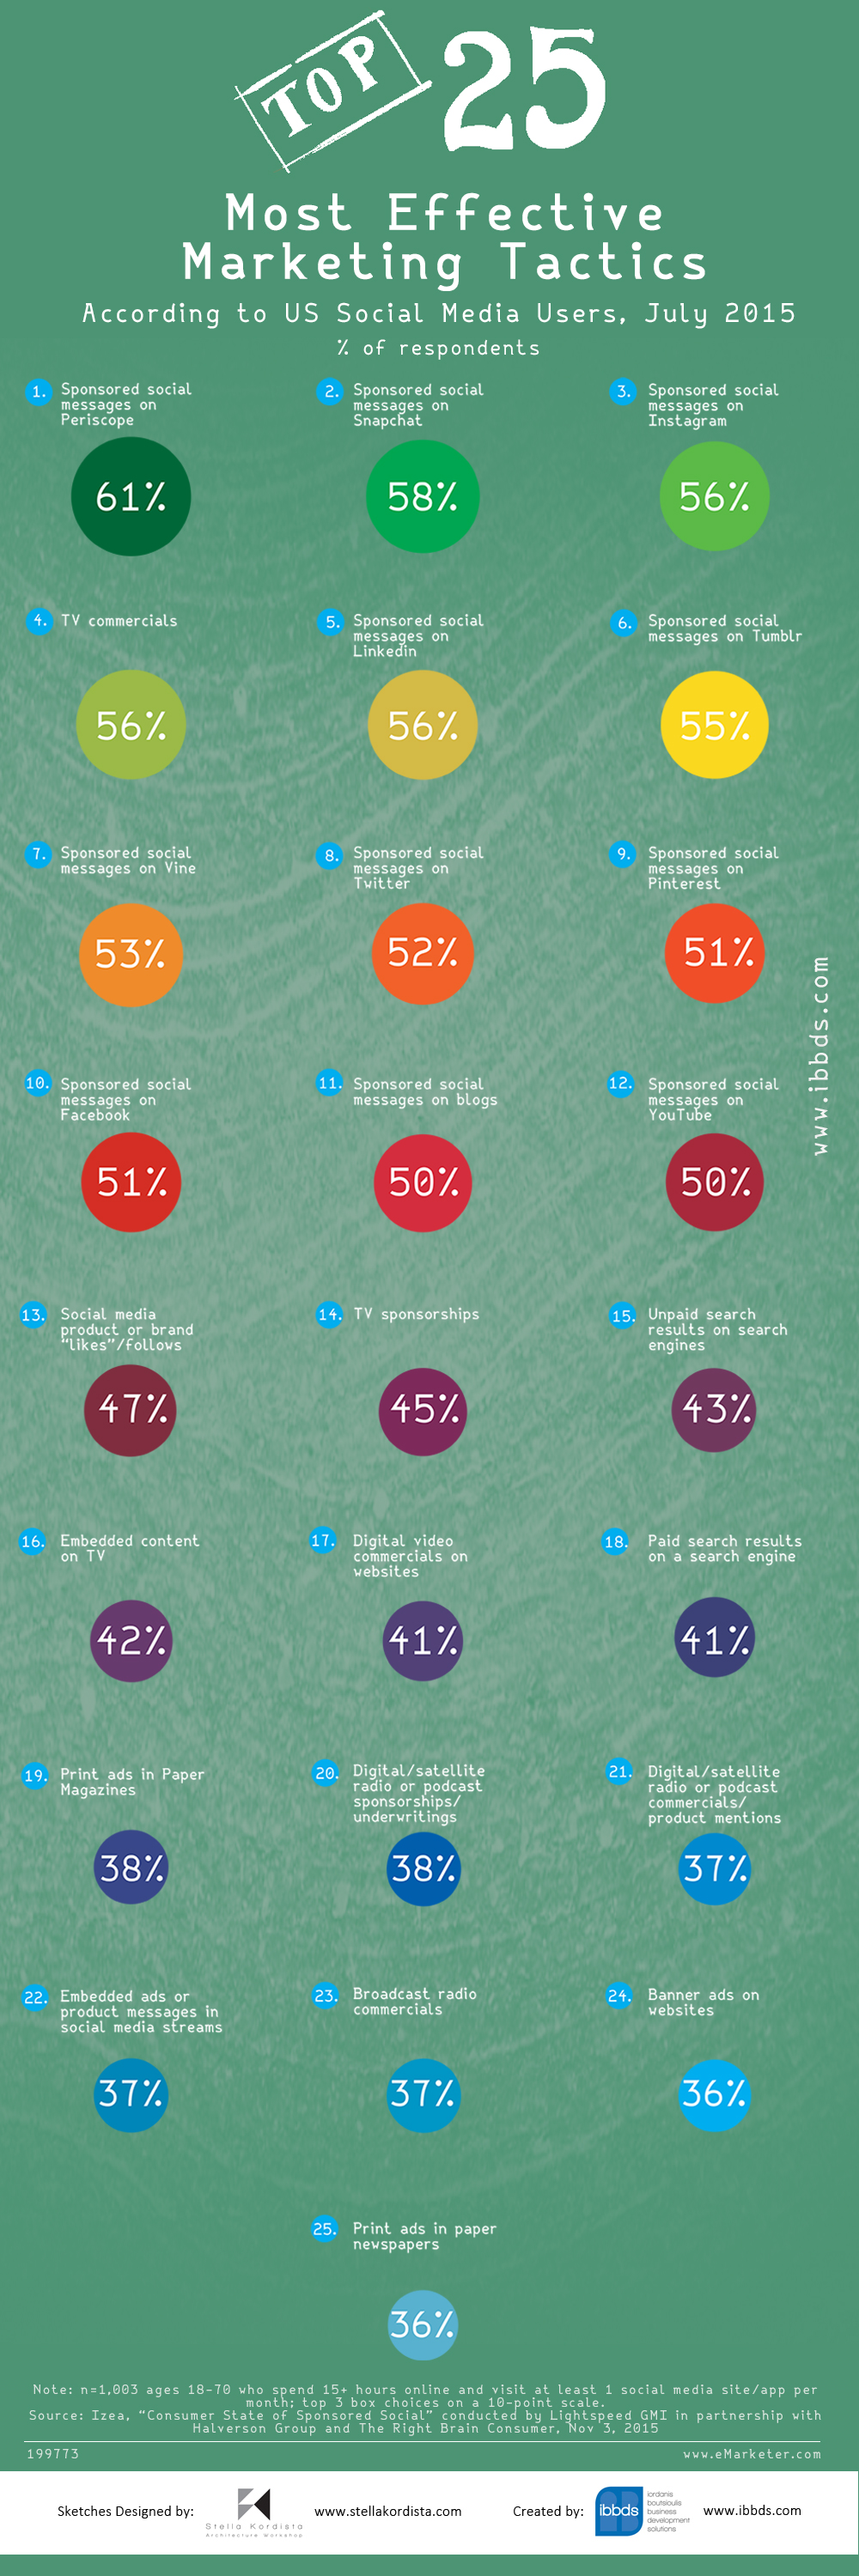 Top 25 Most Effective Marketing Tactics According to US Social Media Users Infographic